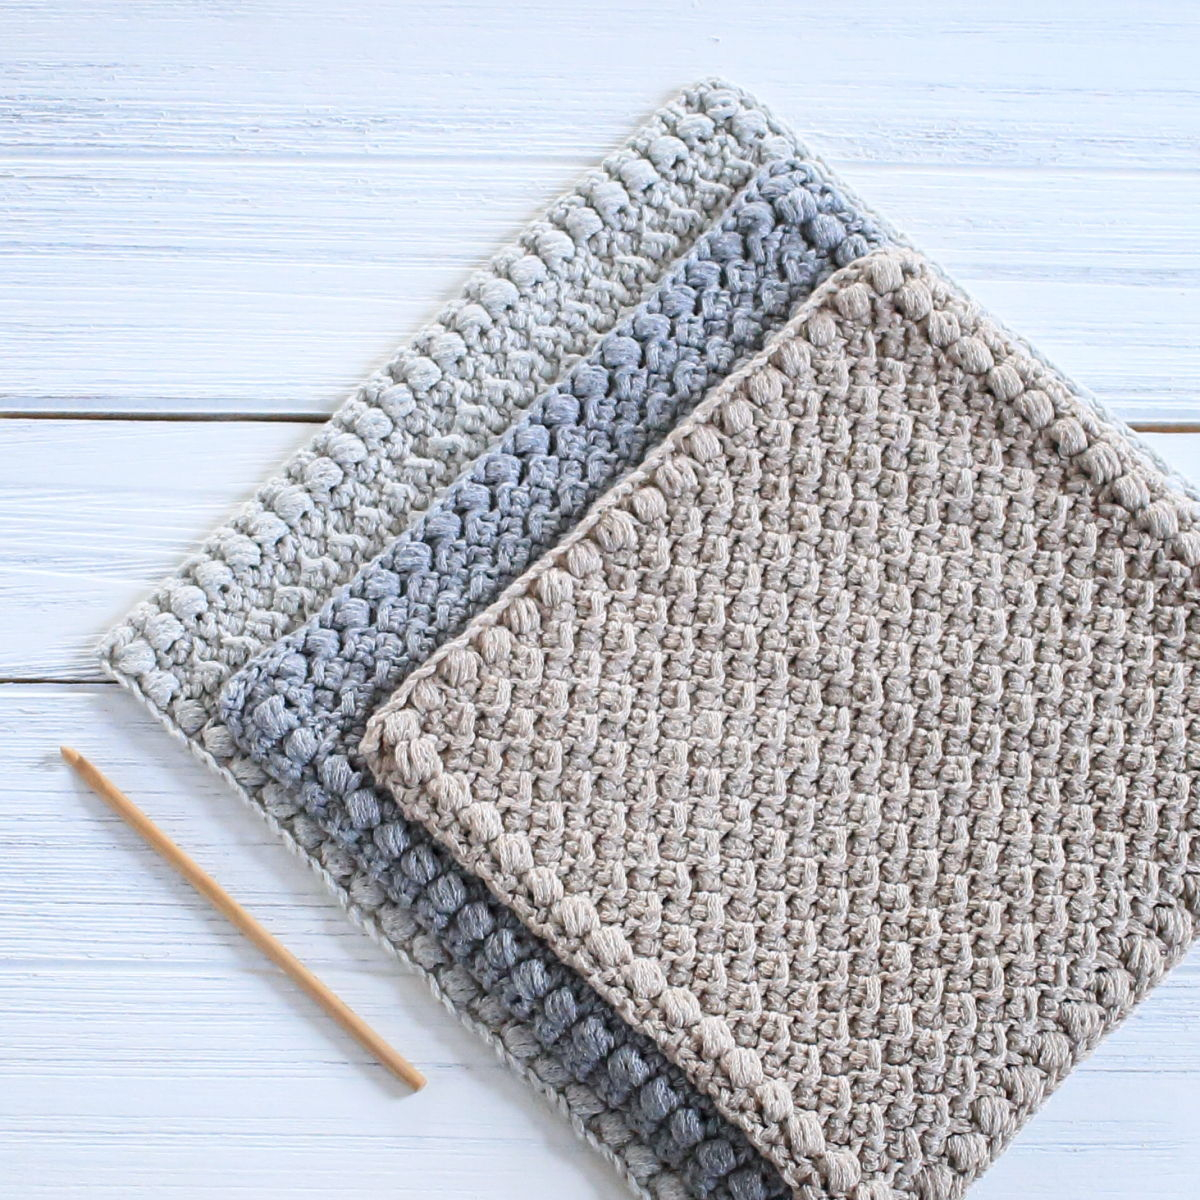 Quick and Simple Dish Cloth Crochet Pattern Creek Pebbles Diy Dishcloth Pattern Crochet Life